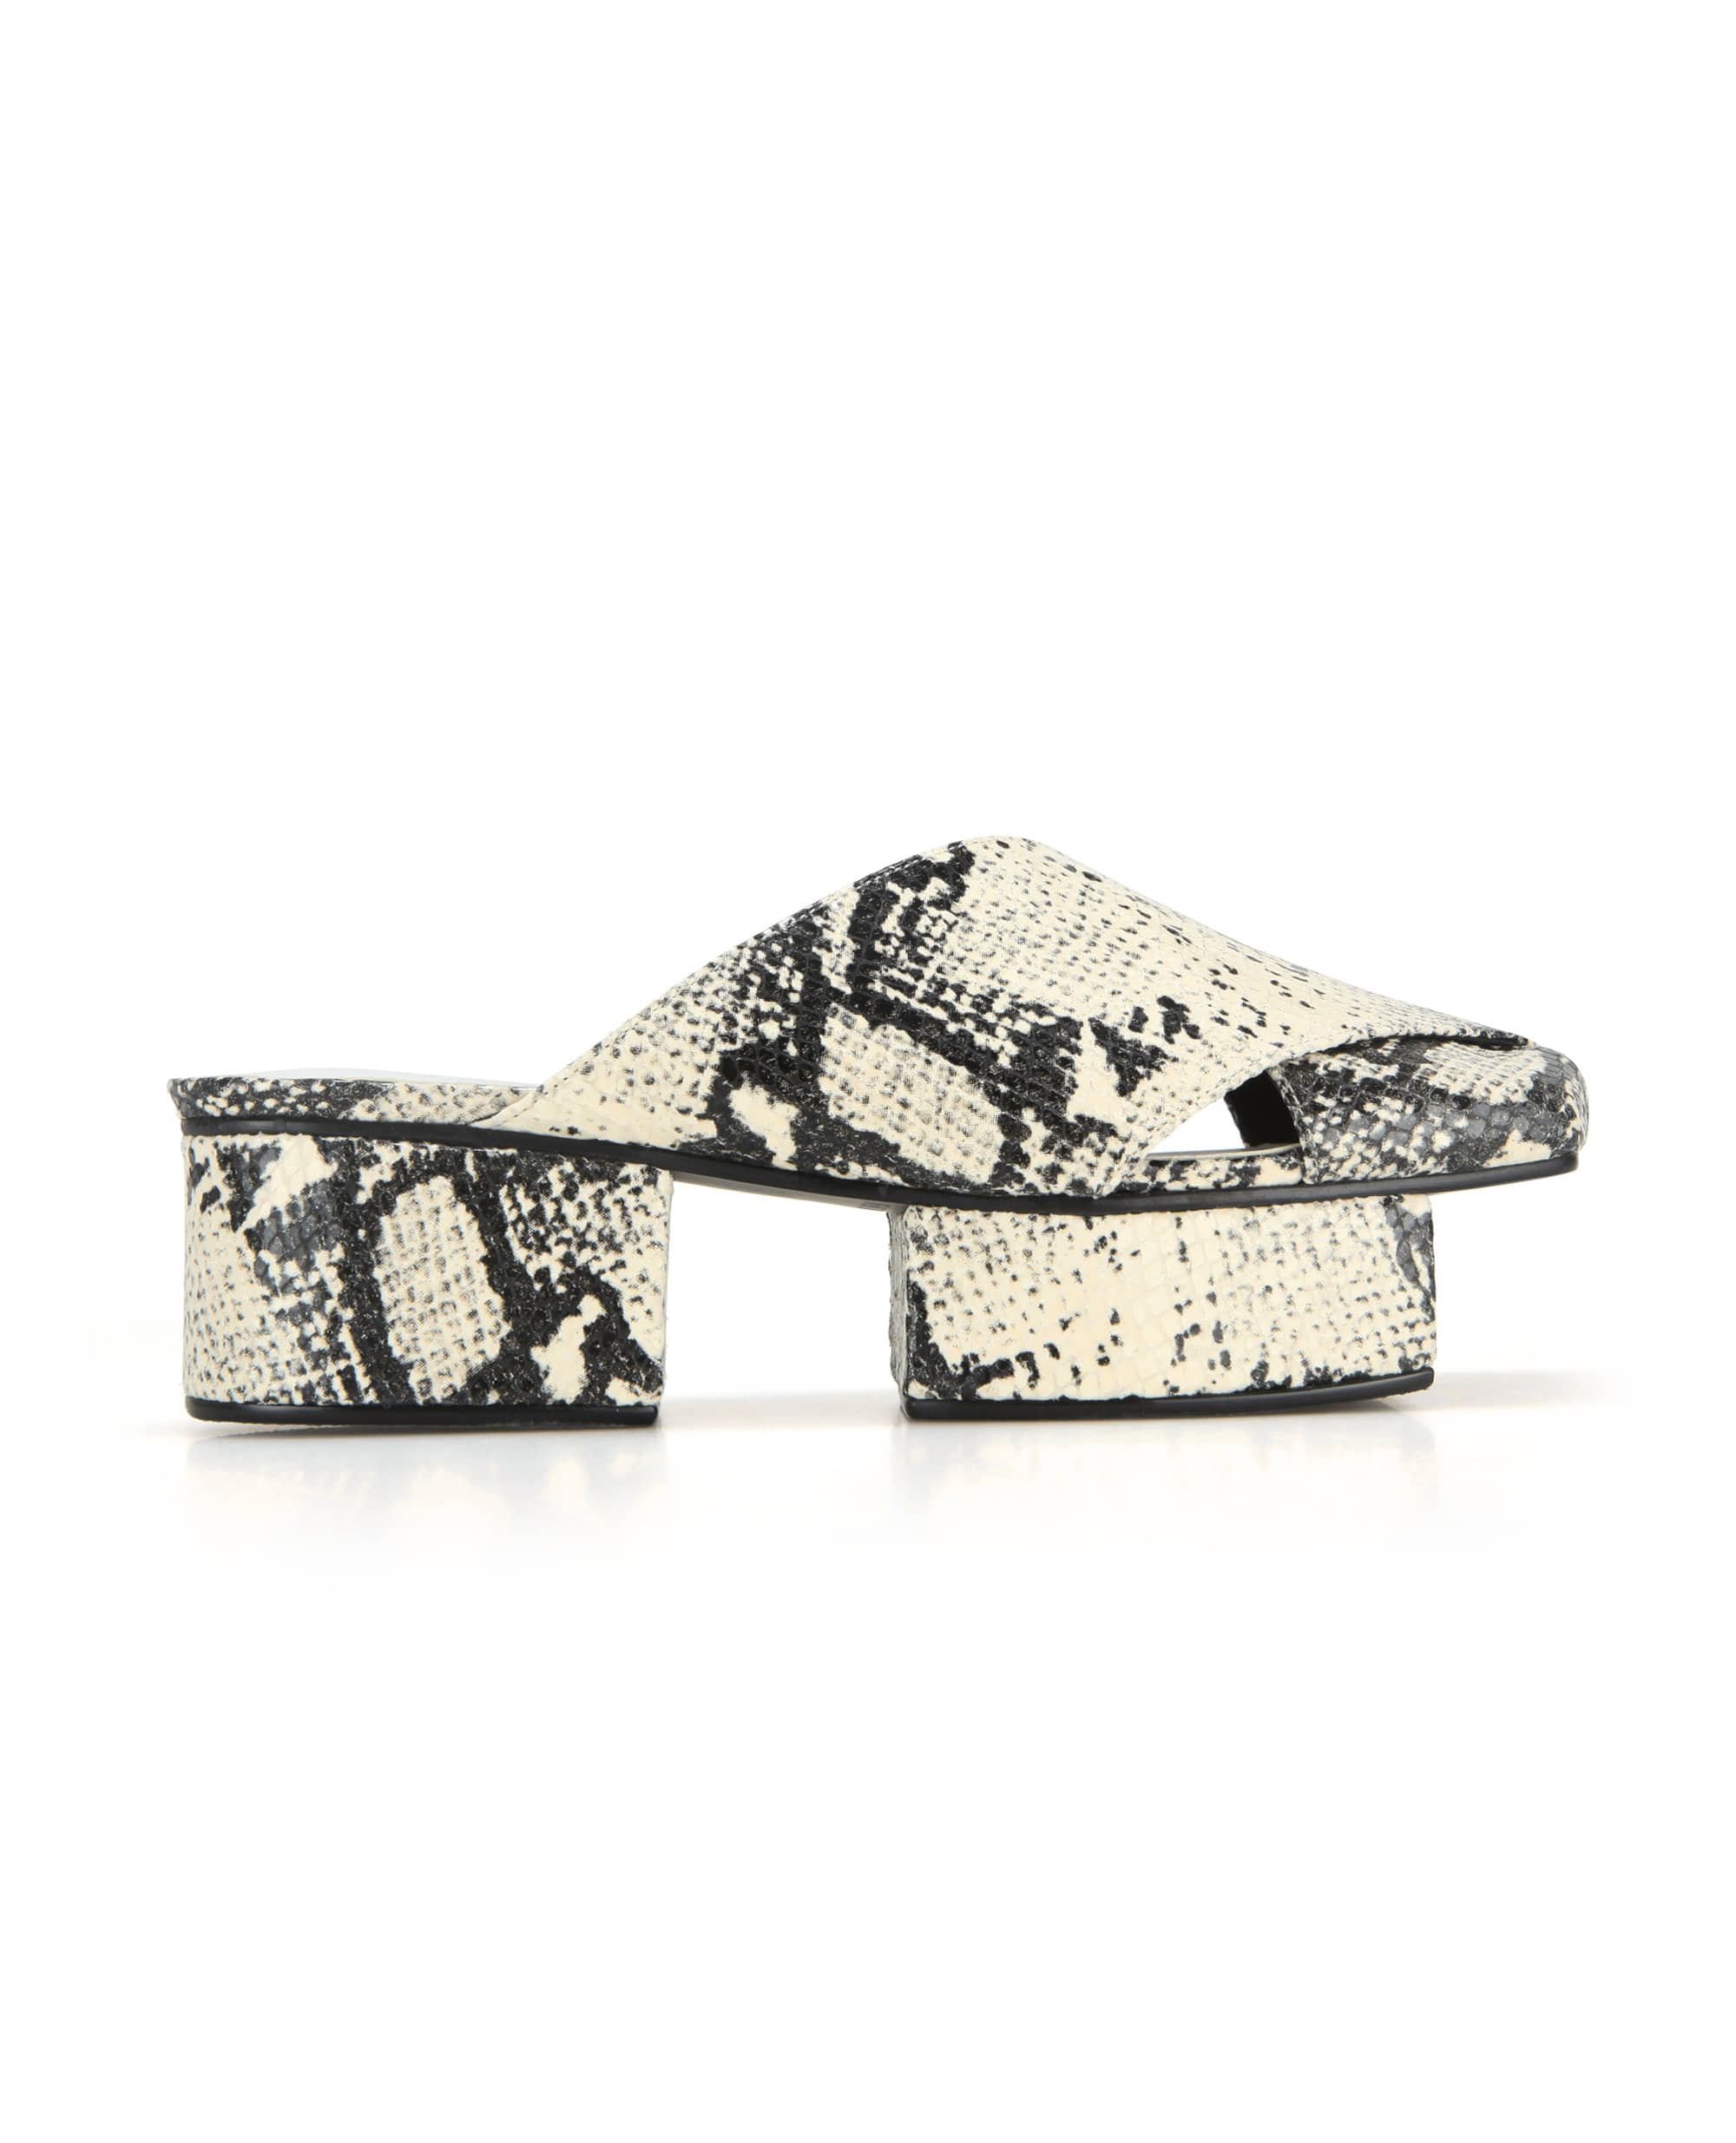 Squared toe crisscross with separated platforms | Butter snake